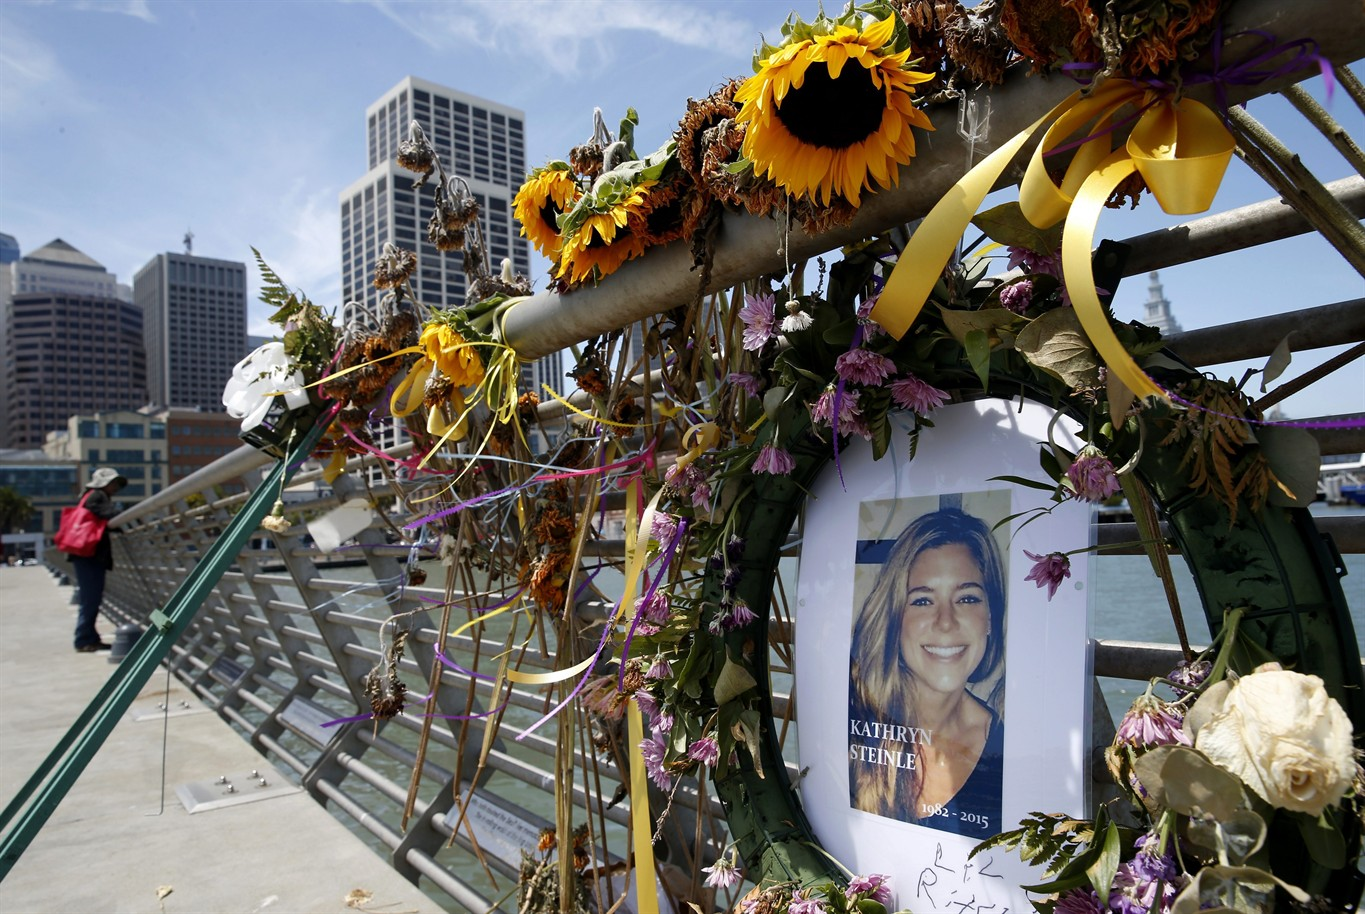 Man acquitted of killing Kate Steinle now will face federal gun charges